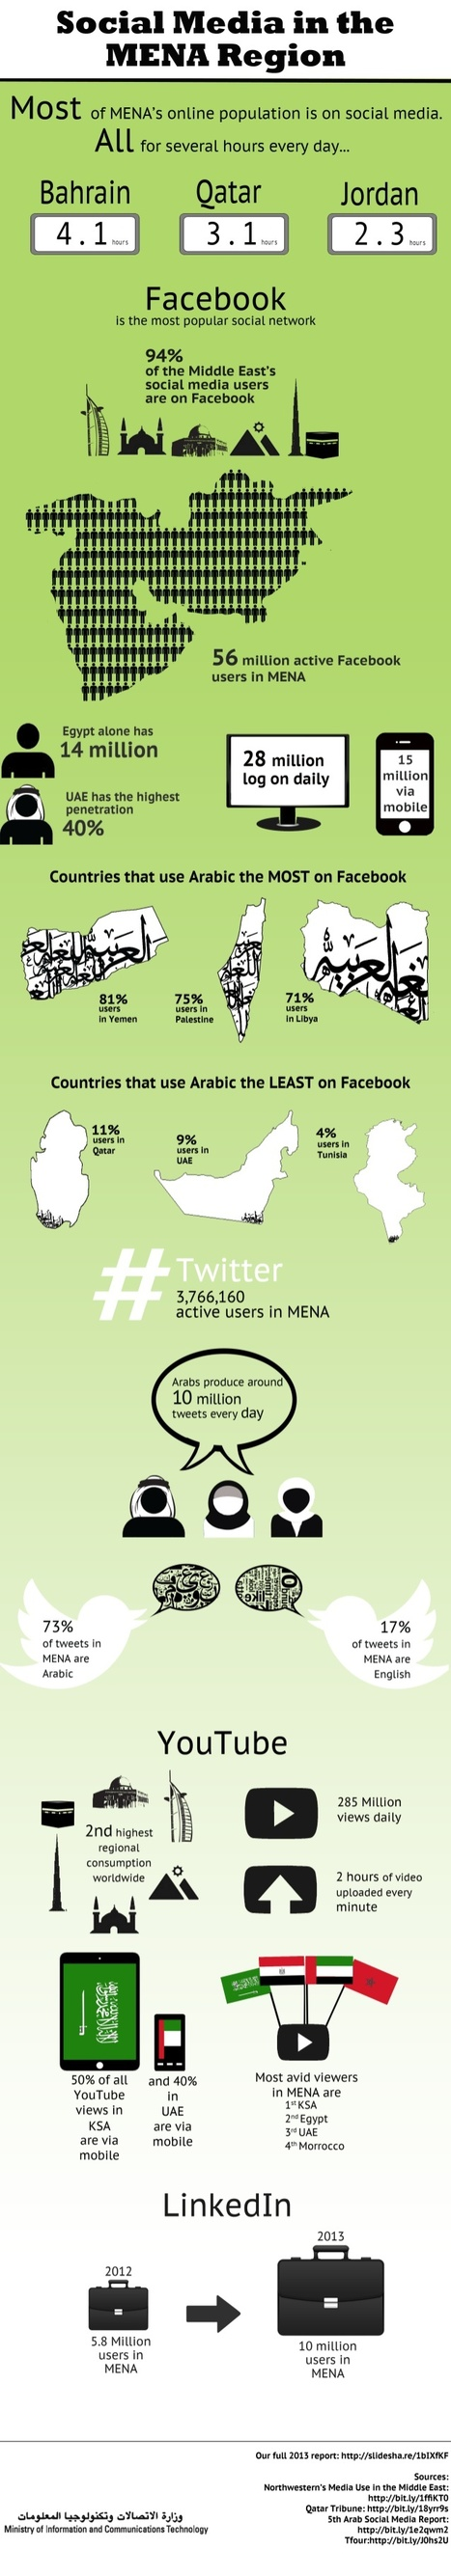 Social Media Usage in the Middle East and North Africa in 2013 [INFOGRAPHIC] | EPIC Infographic | Scoop.it